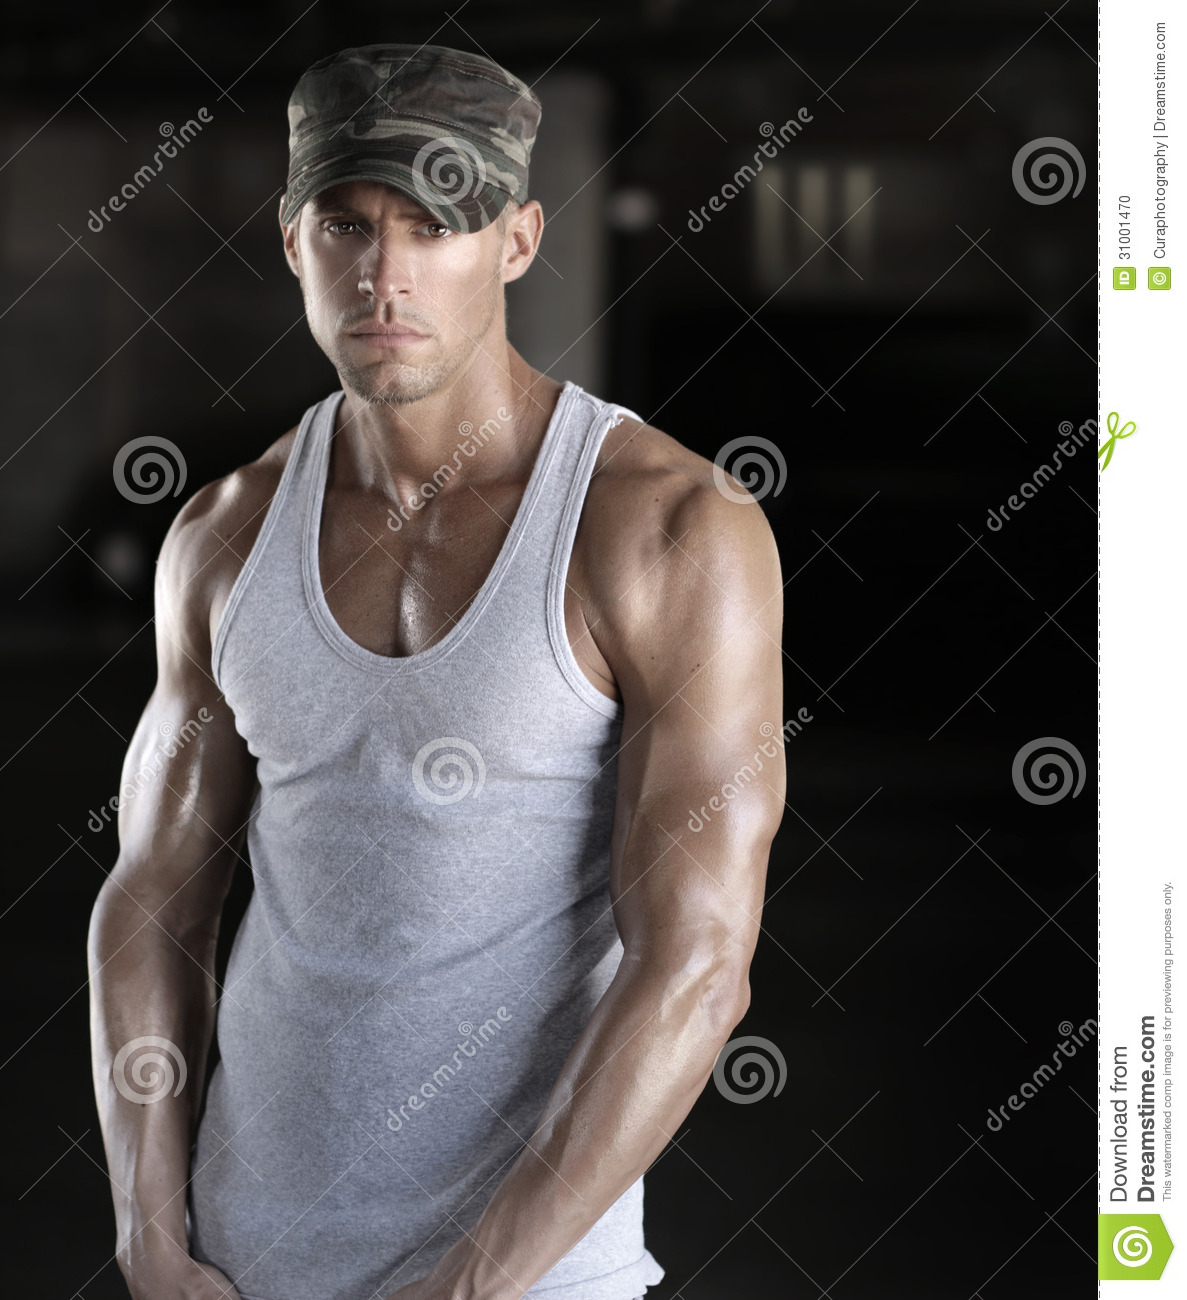 Sexy Soldier Stock Photos, Images, & Pictures | Shutterstock